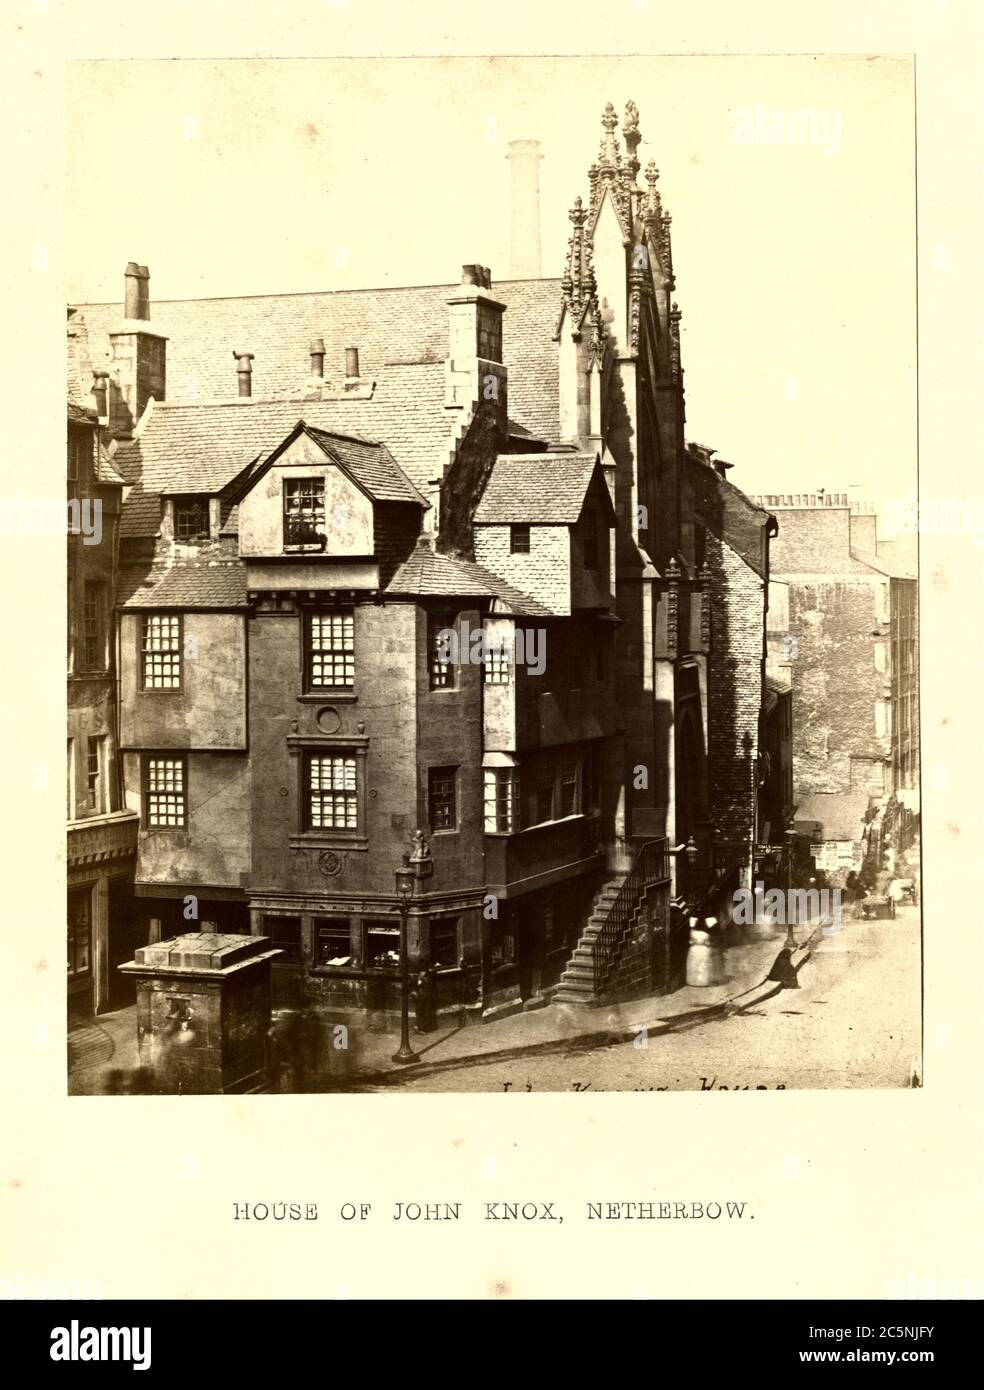 House of John Knox, Netherbow, 1868, Photograph by Archibald Burns (1831–1880). Stock Photo